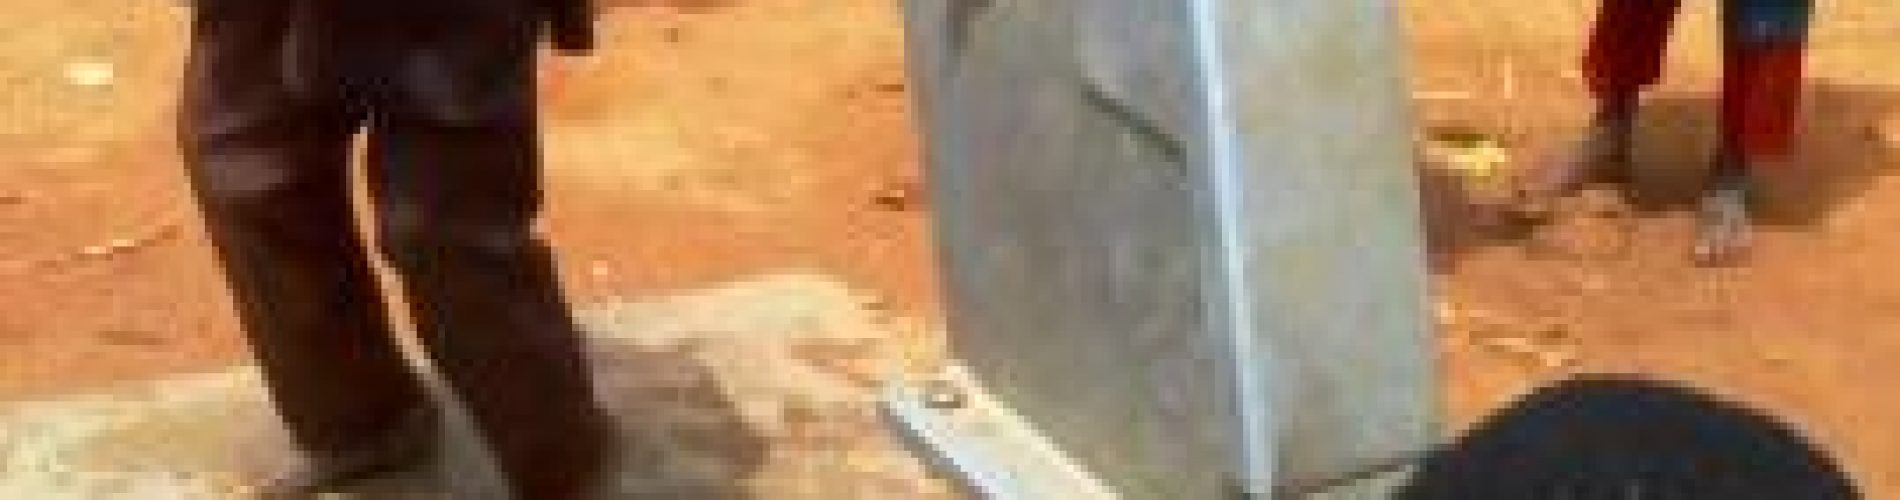 Open defecation: Borehole makes a difference in Kano community